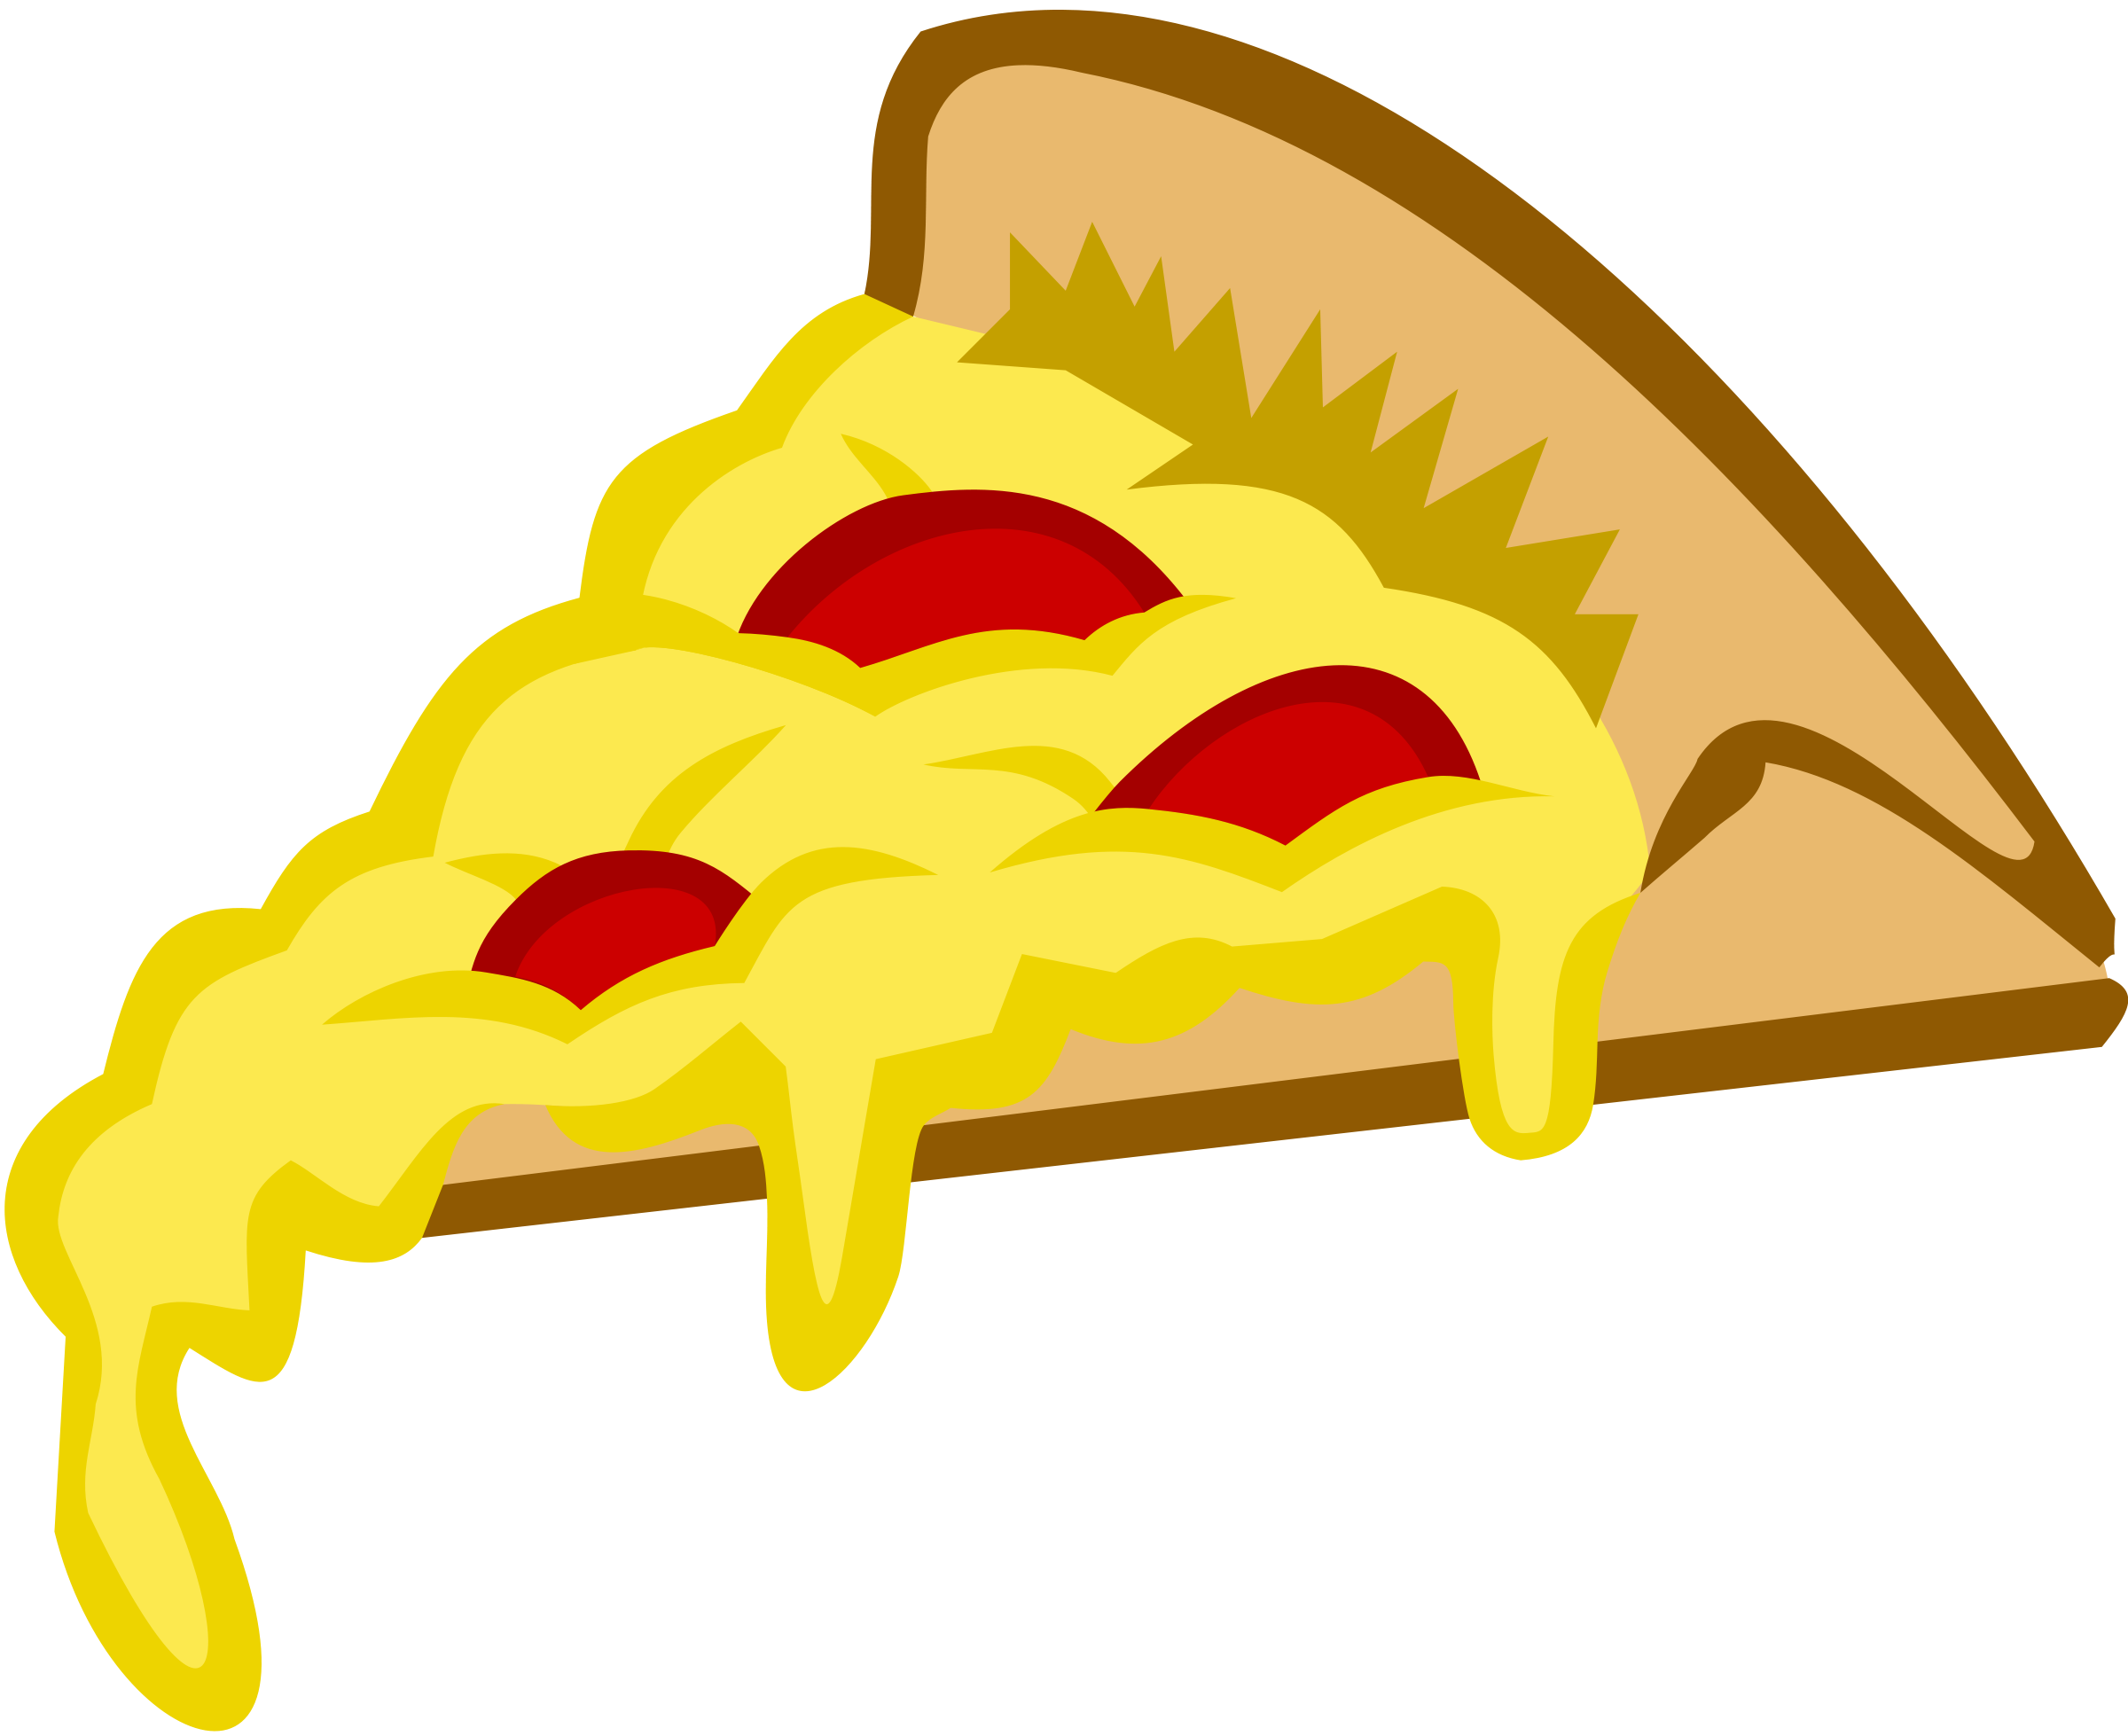 Pie clipart slice pie. Pizza clip art free